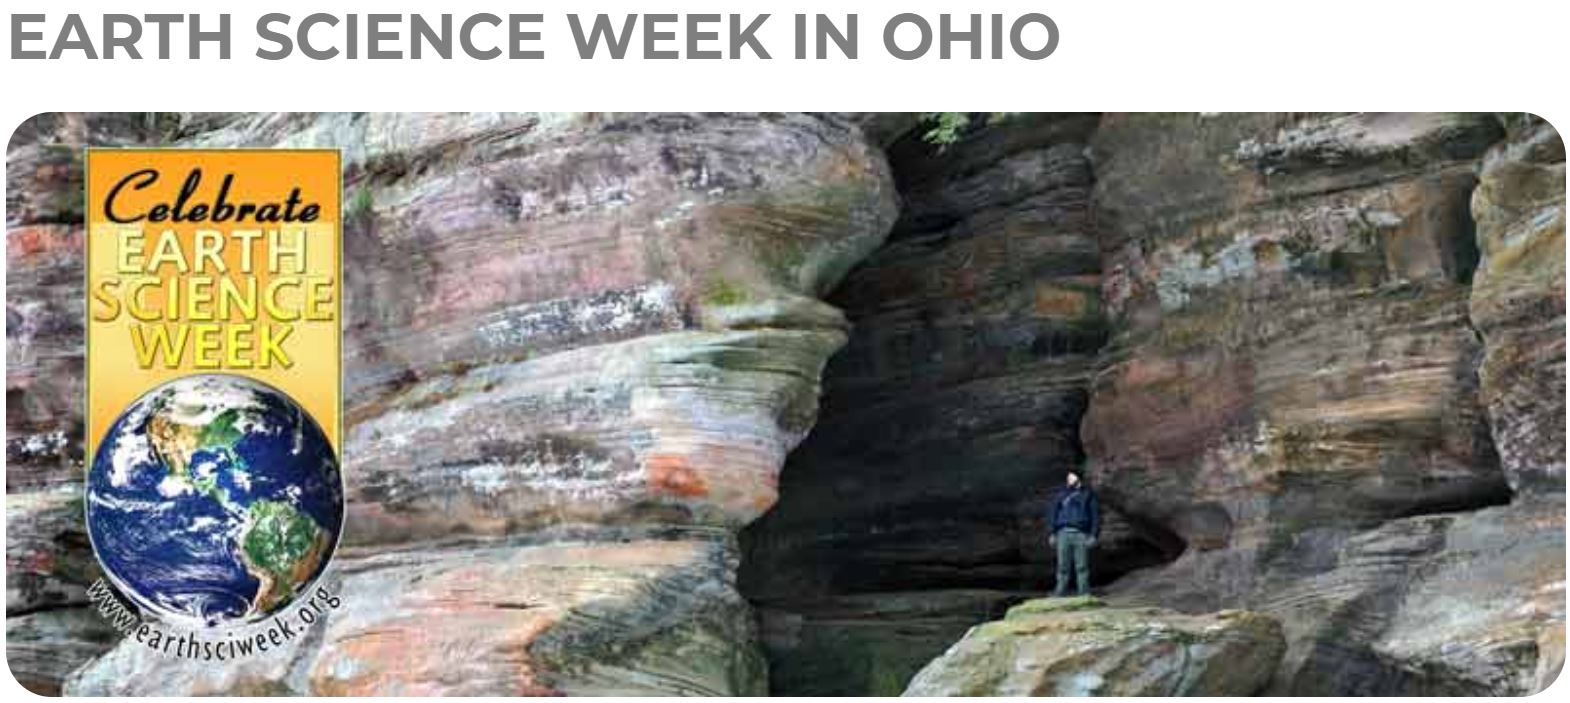 Earth Science Week with the ODNR Division of Geological Survey